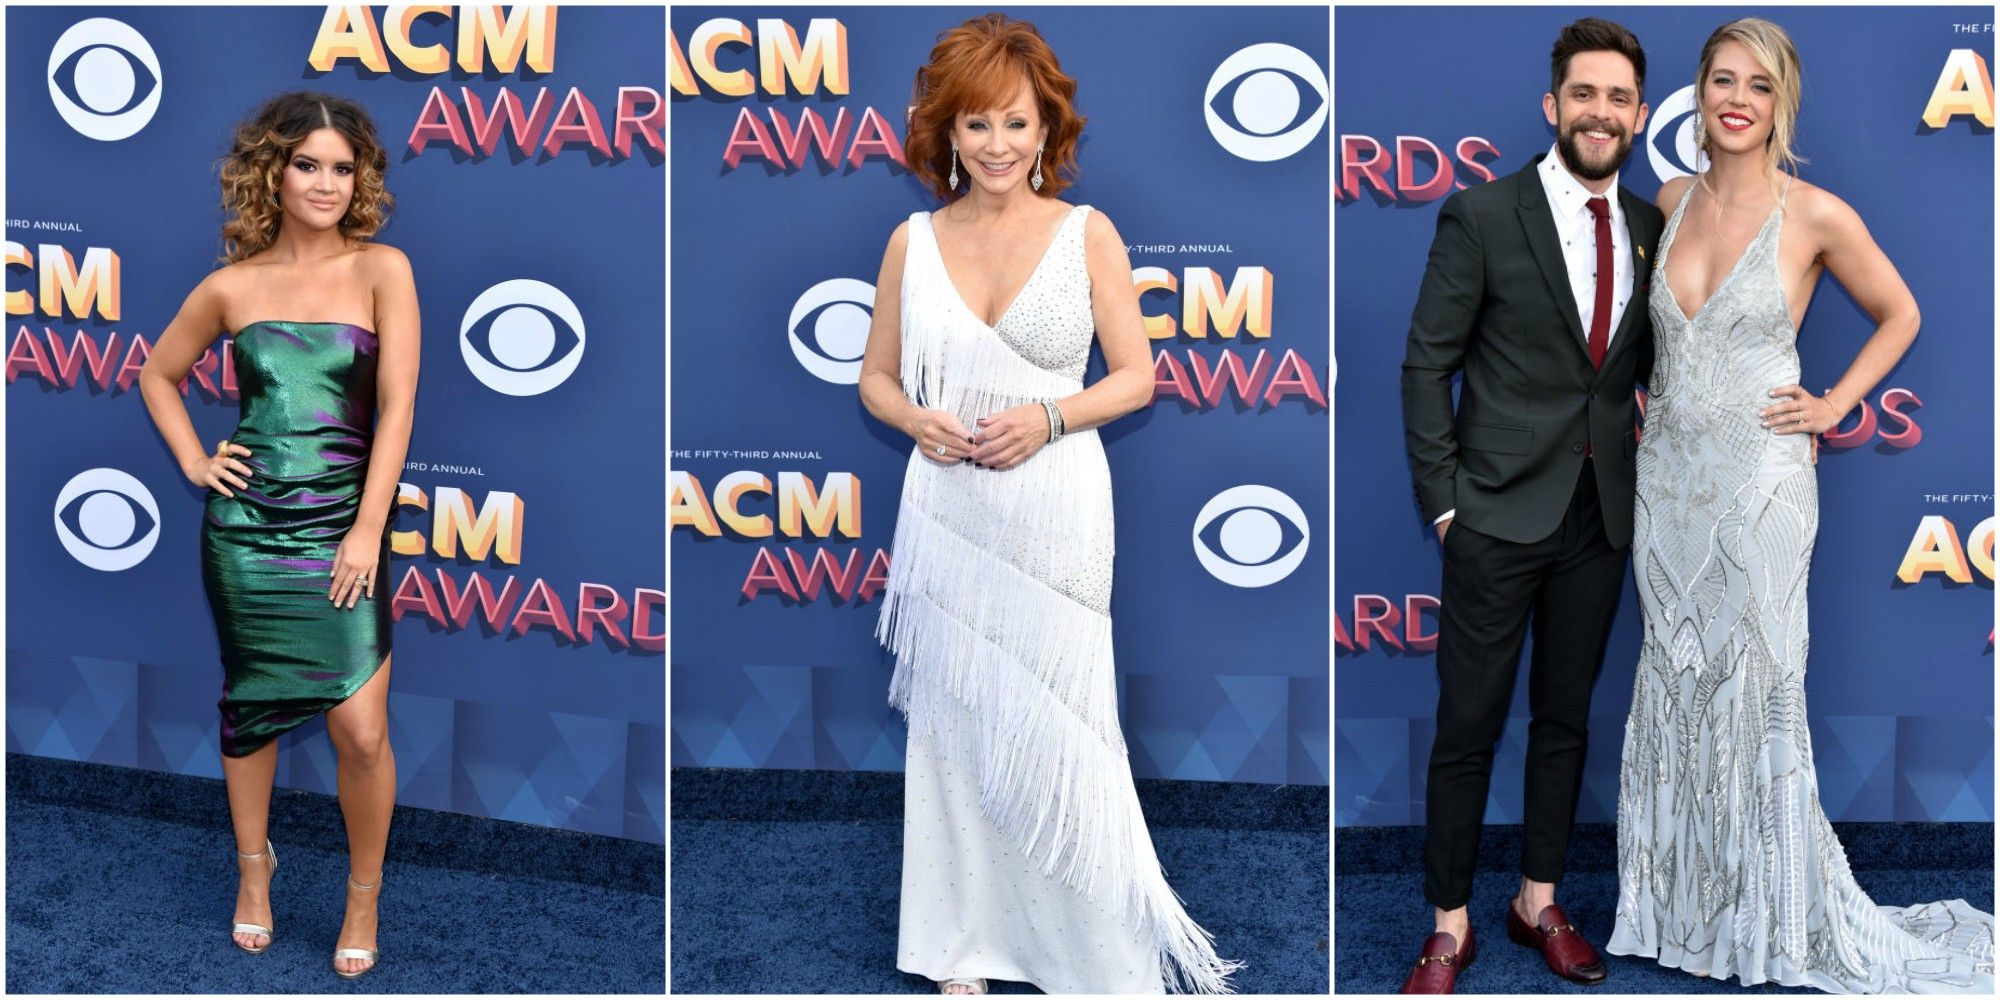 acm awards red carpet 2018